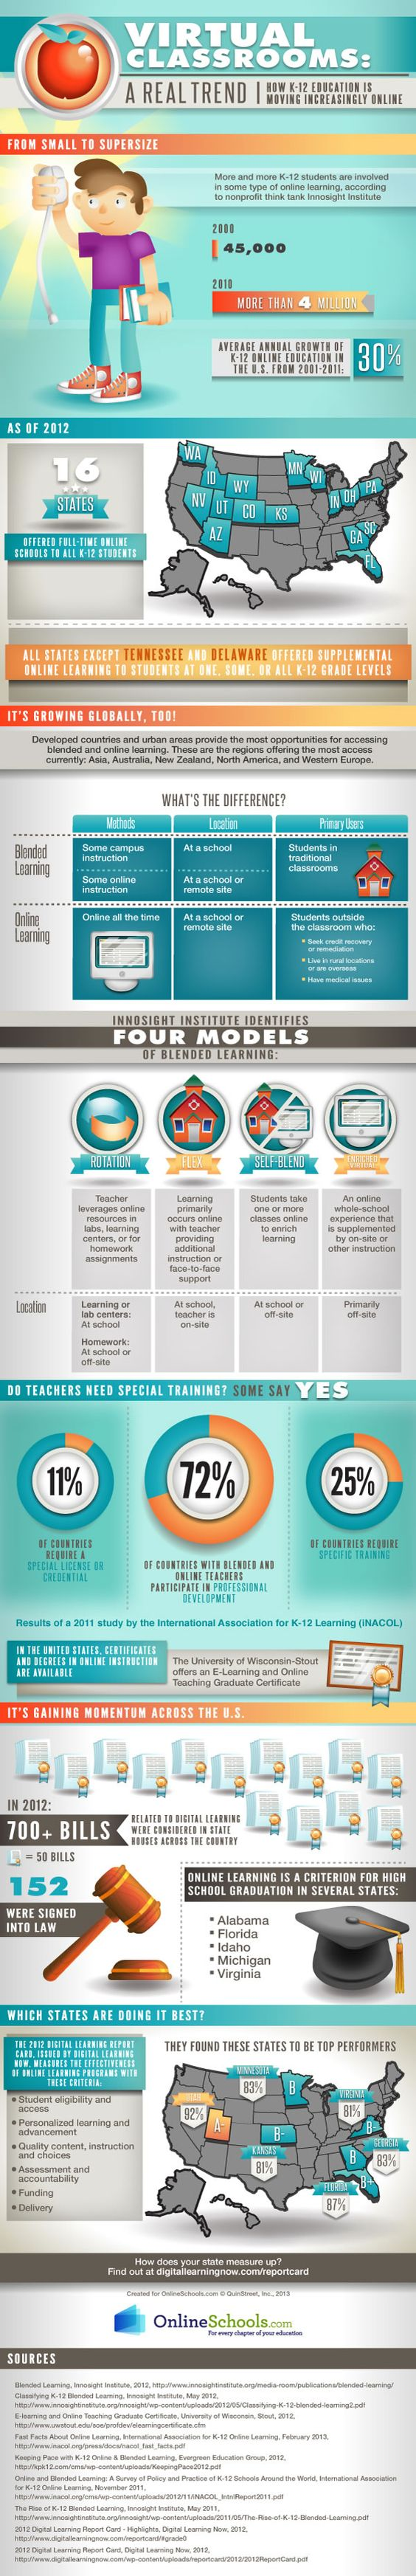 Blended learning is on the rise and being used more than online learning in some countries around the world. According to iNACOL, blended learning is described as a mode that supports in-class activities for students in an actual classroom whereas online learning occurs entirely outside of the classroom and entails no physical student presence at all.